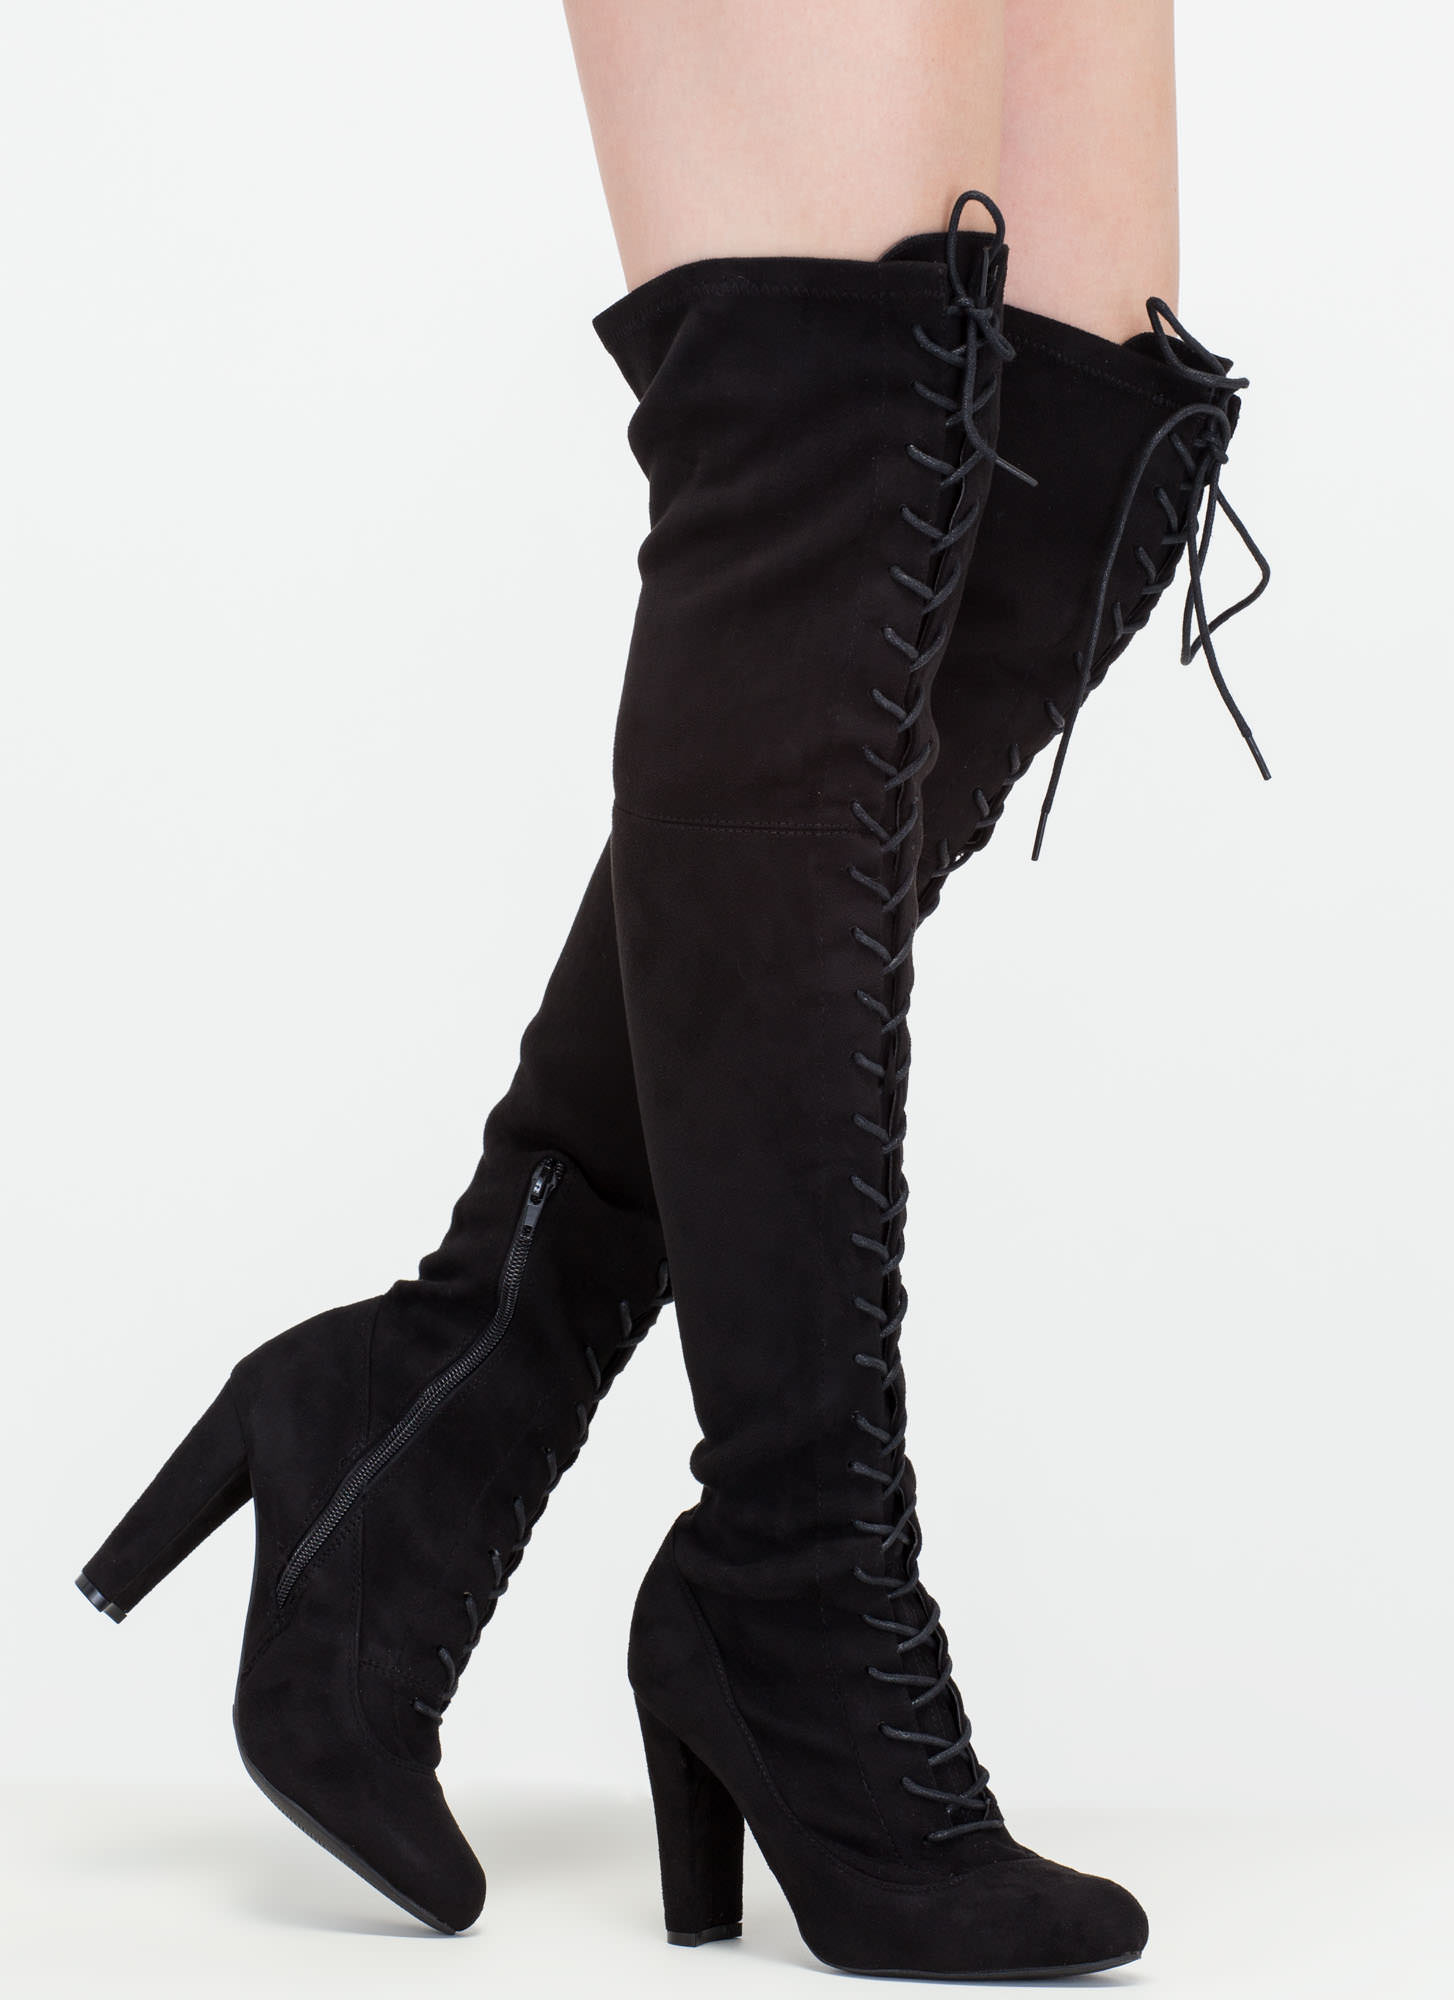 on corset tie up thigh high faux suede boots black taupe